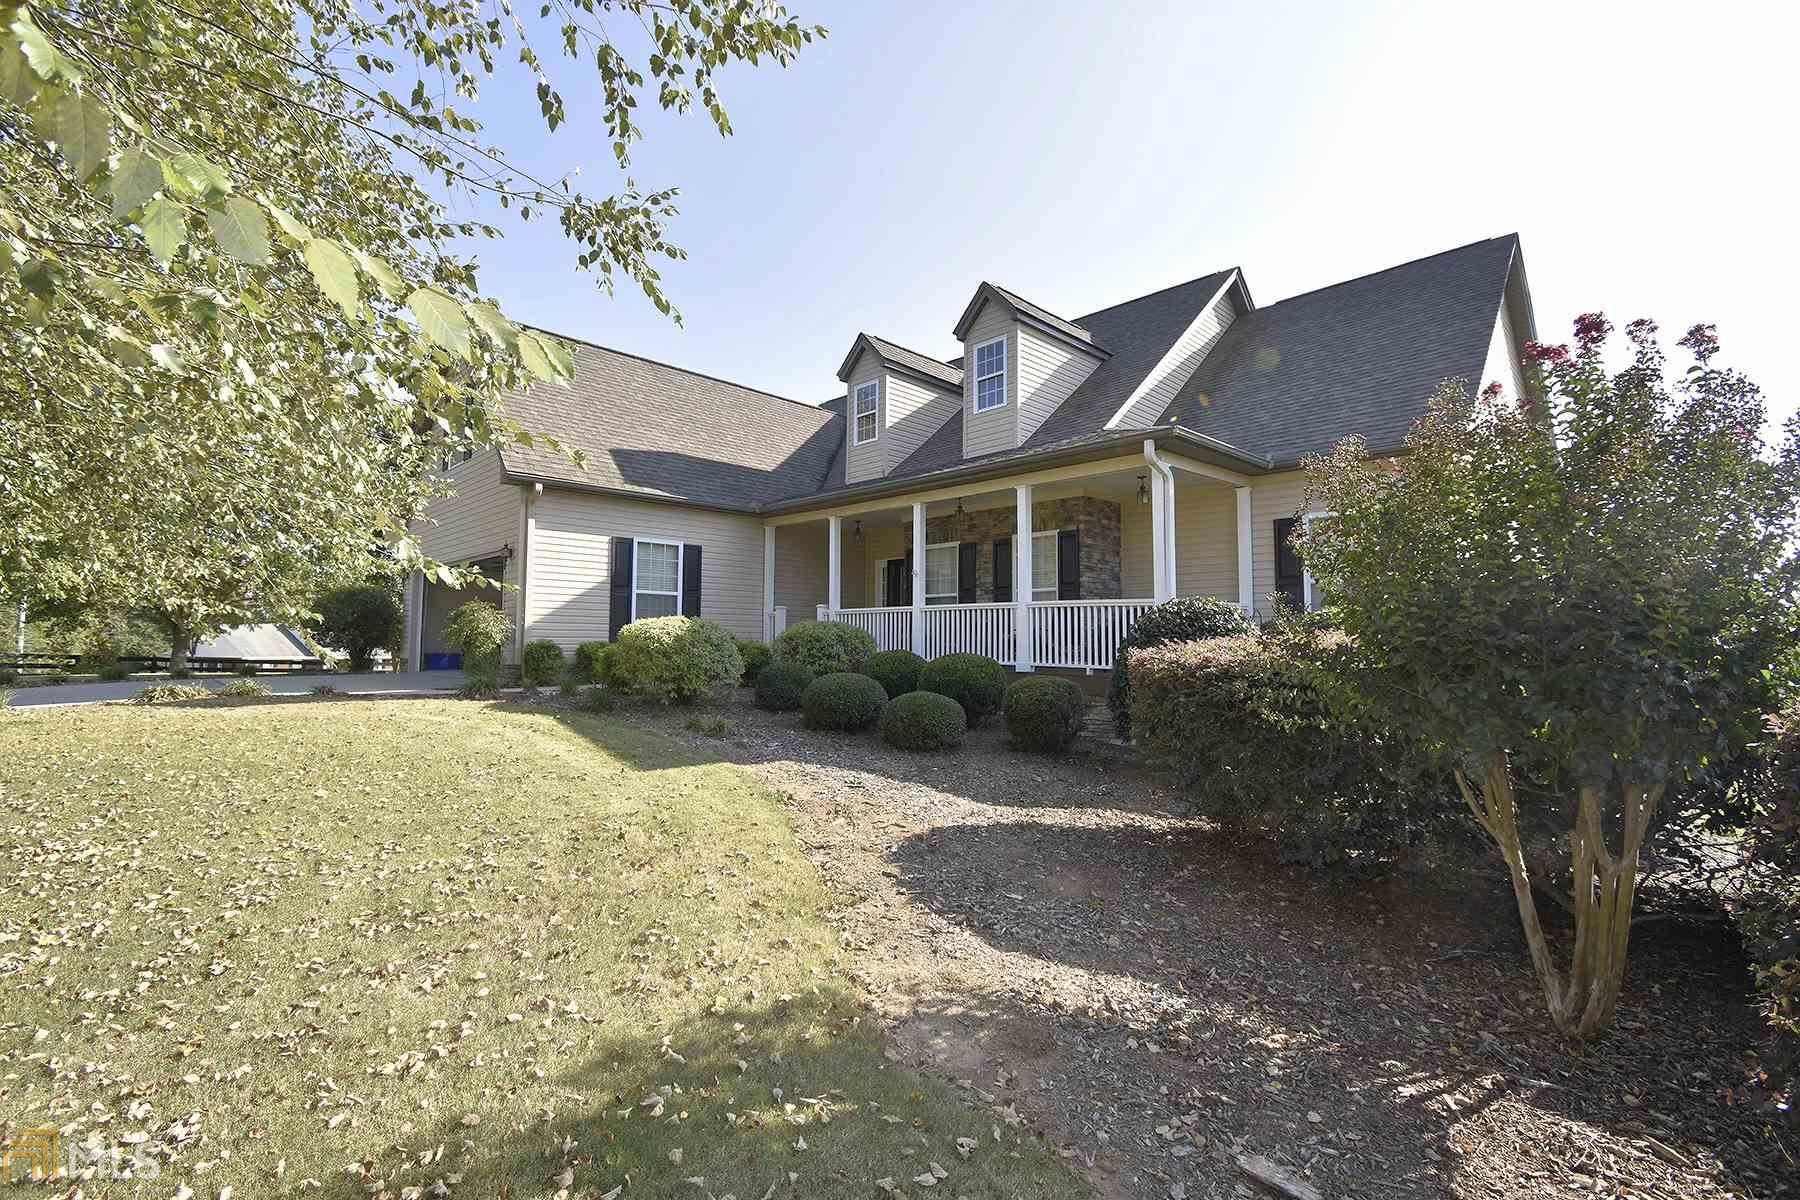 6503 Station Dr, Clermont, GA 30527 - #: 8789428